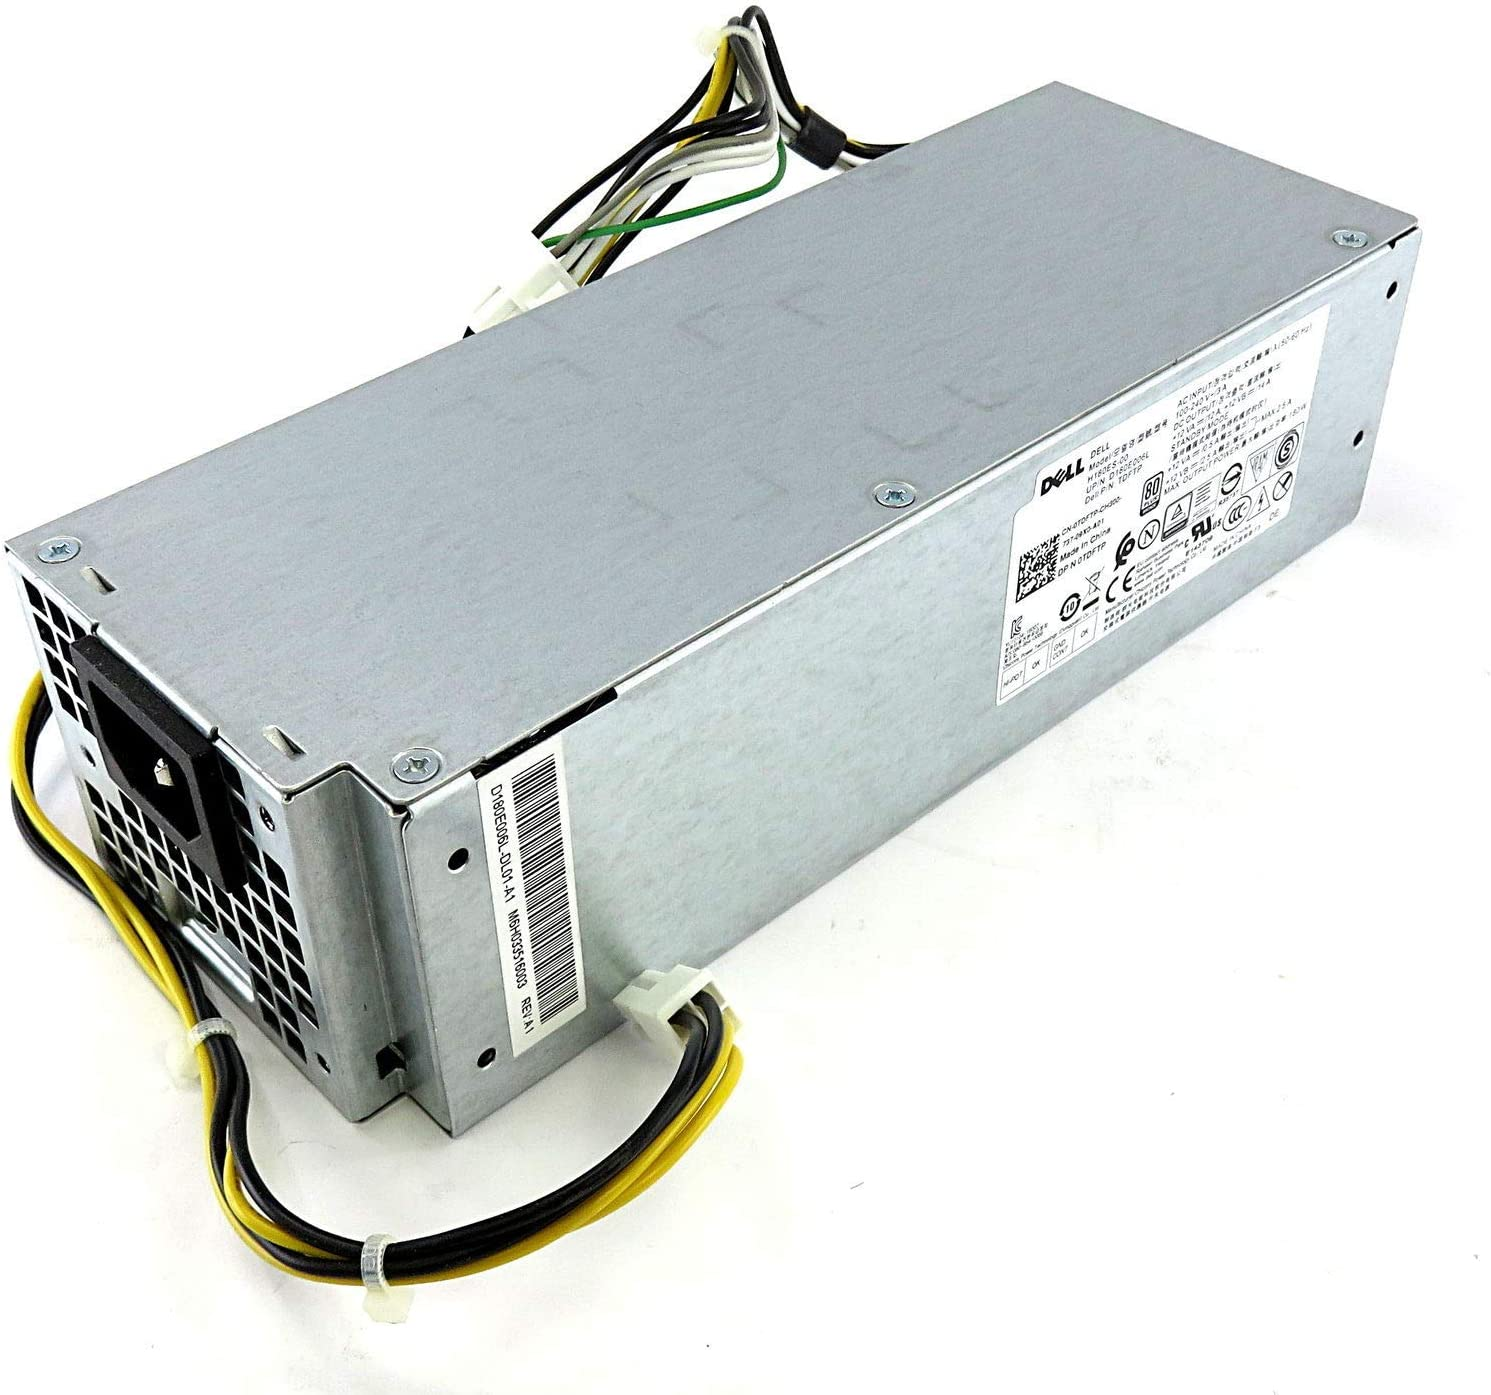 New Clearance 5 ☆ very popular SALE Limited time Genuine PS for Dell Precision Power Suppl 7050 3420 180W SFF